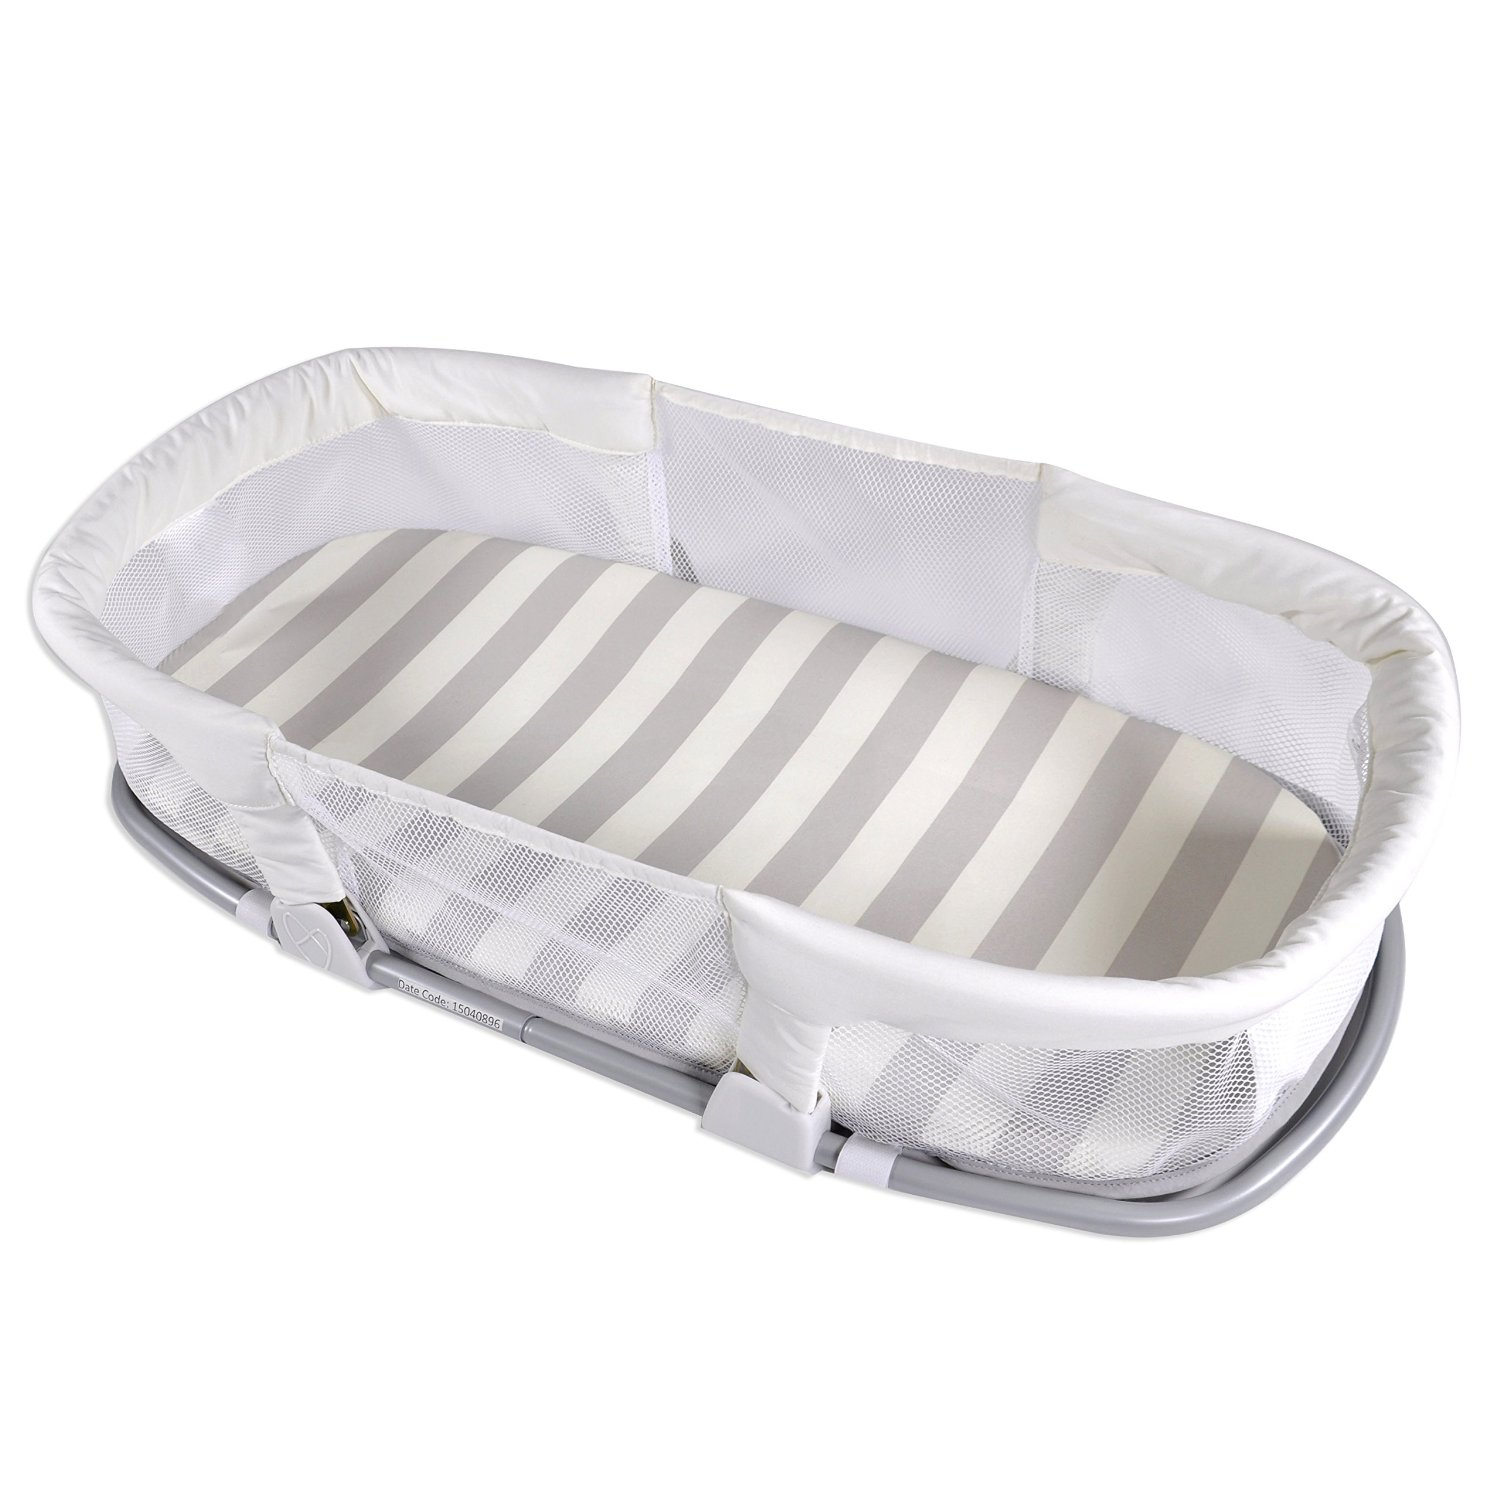 Bed crib baby crib bed bb newborn infants bassinets travel ...